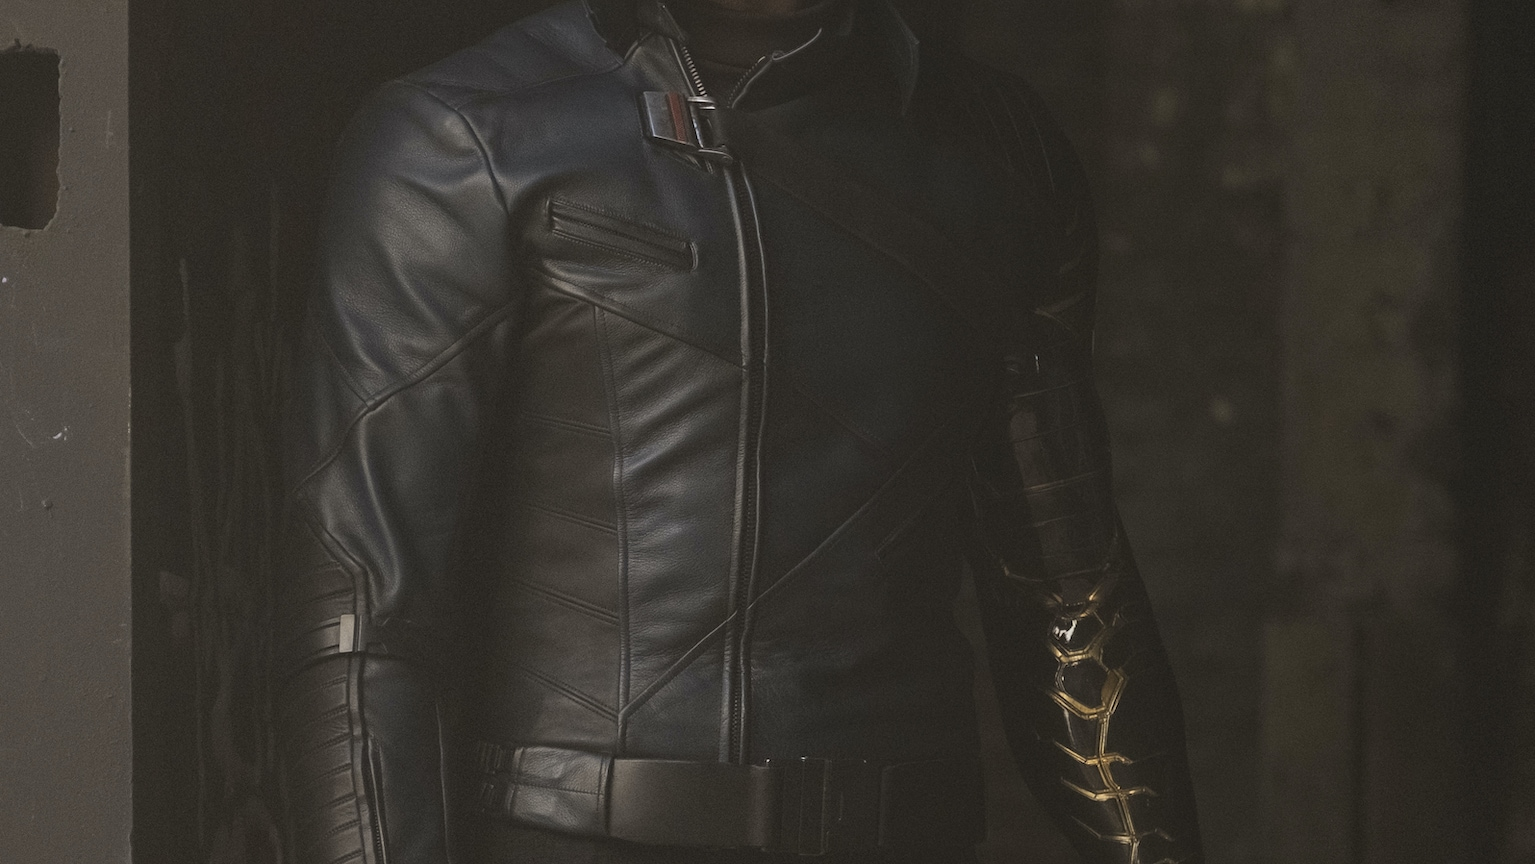 Winter Soldier/Bucky Barnes (Sebastian Stan) in Marvel Studios' THE FALCON AND THE WINTER SOLDIER exclusively on Disney+. Photo by Chuck Zlotnick. ©Marvel Studios 2020. All Rights Reserved.